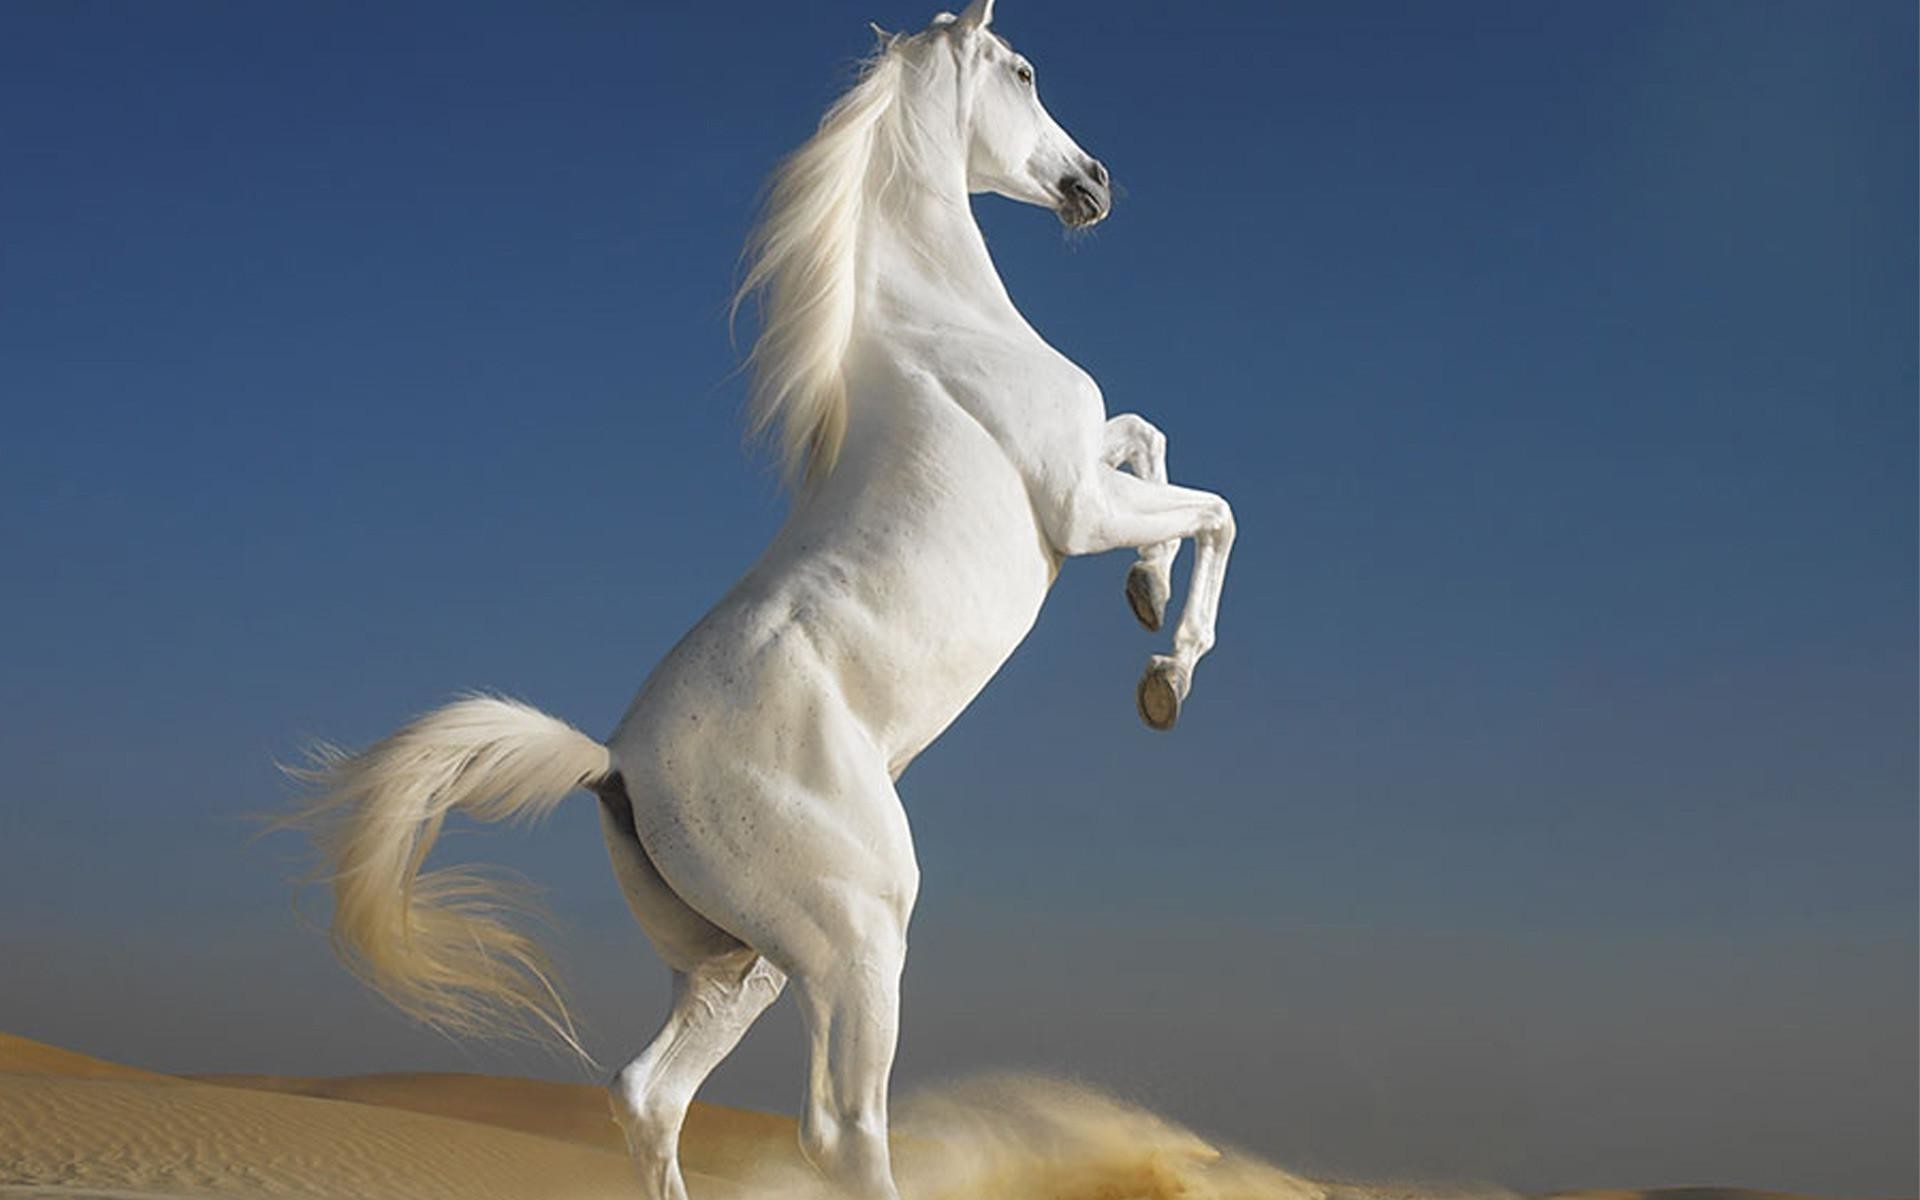 1920x1200 Beautiful white horse wallpapers and images wallpapers pictures .